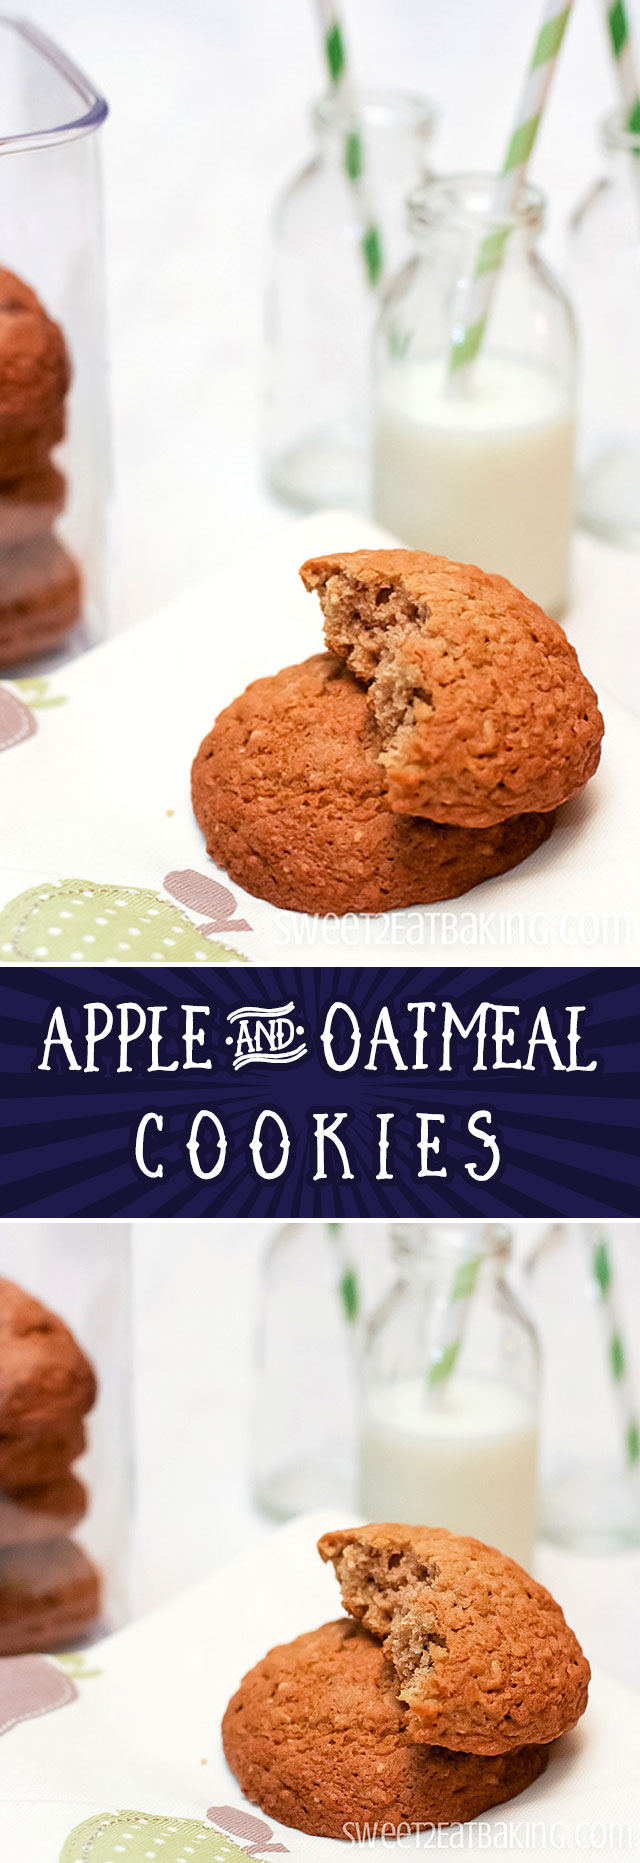 Apple and Oatmeal Cookies Recipe by Sweet2EatBaking.com | Lightly spiced with cinnamon which gives them that warming winter kick. The oatmeal gives them a slightly chewy texture. Light and moist.